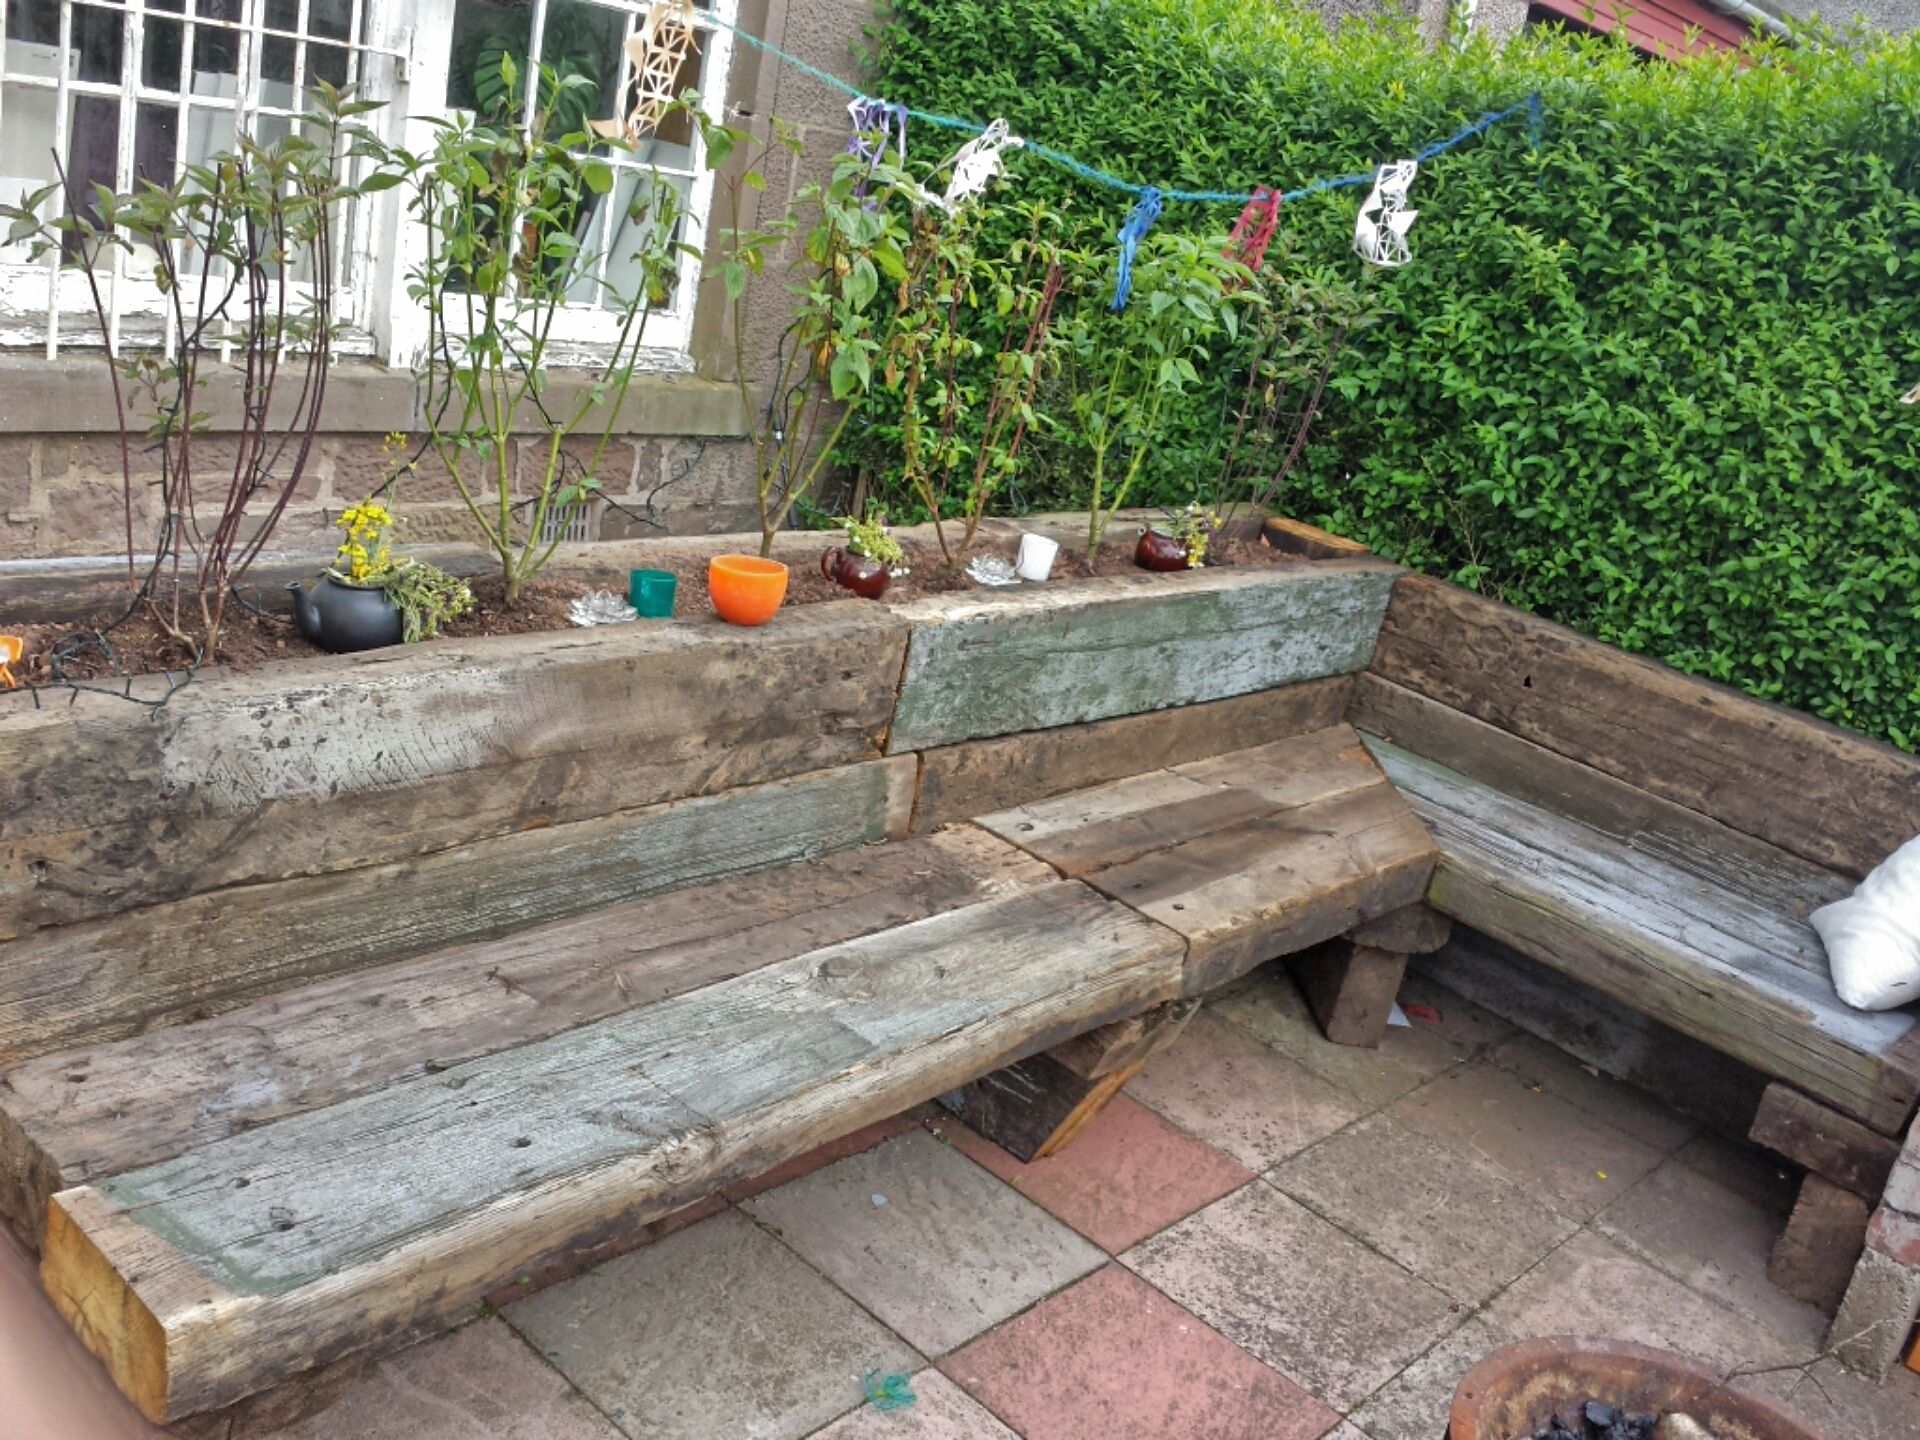 Plant Bench Indoor Garden Bench And Planter Made From Old Railway Sleepers